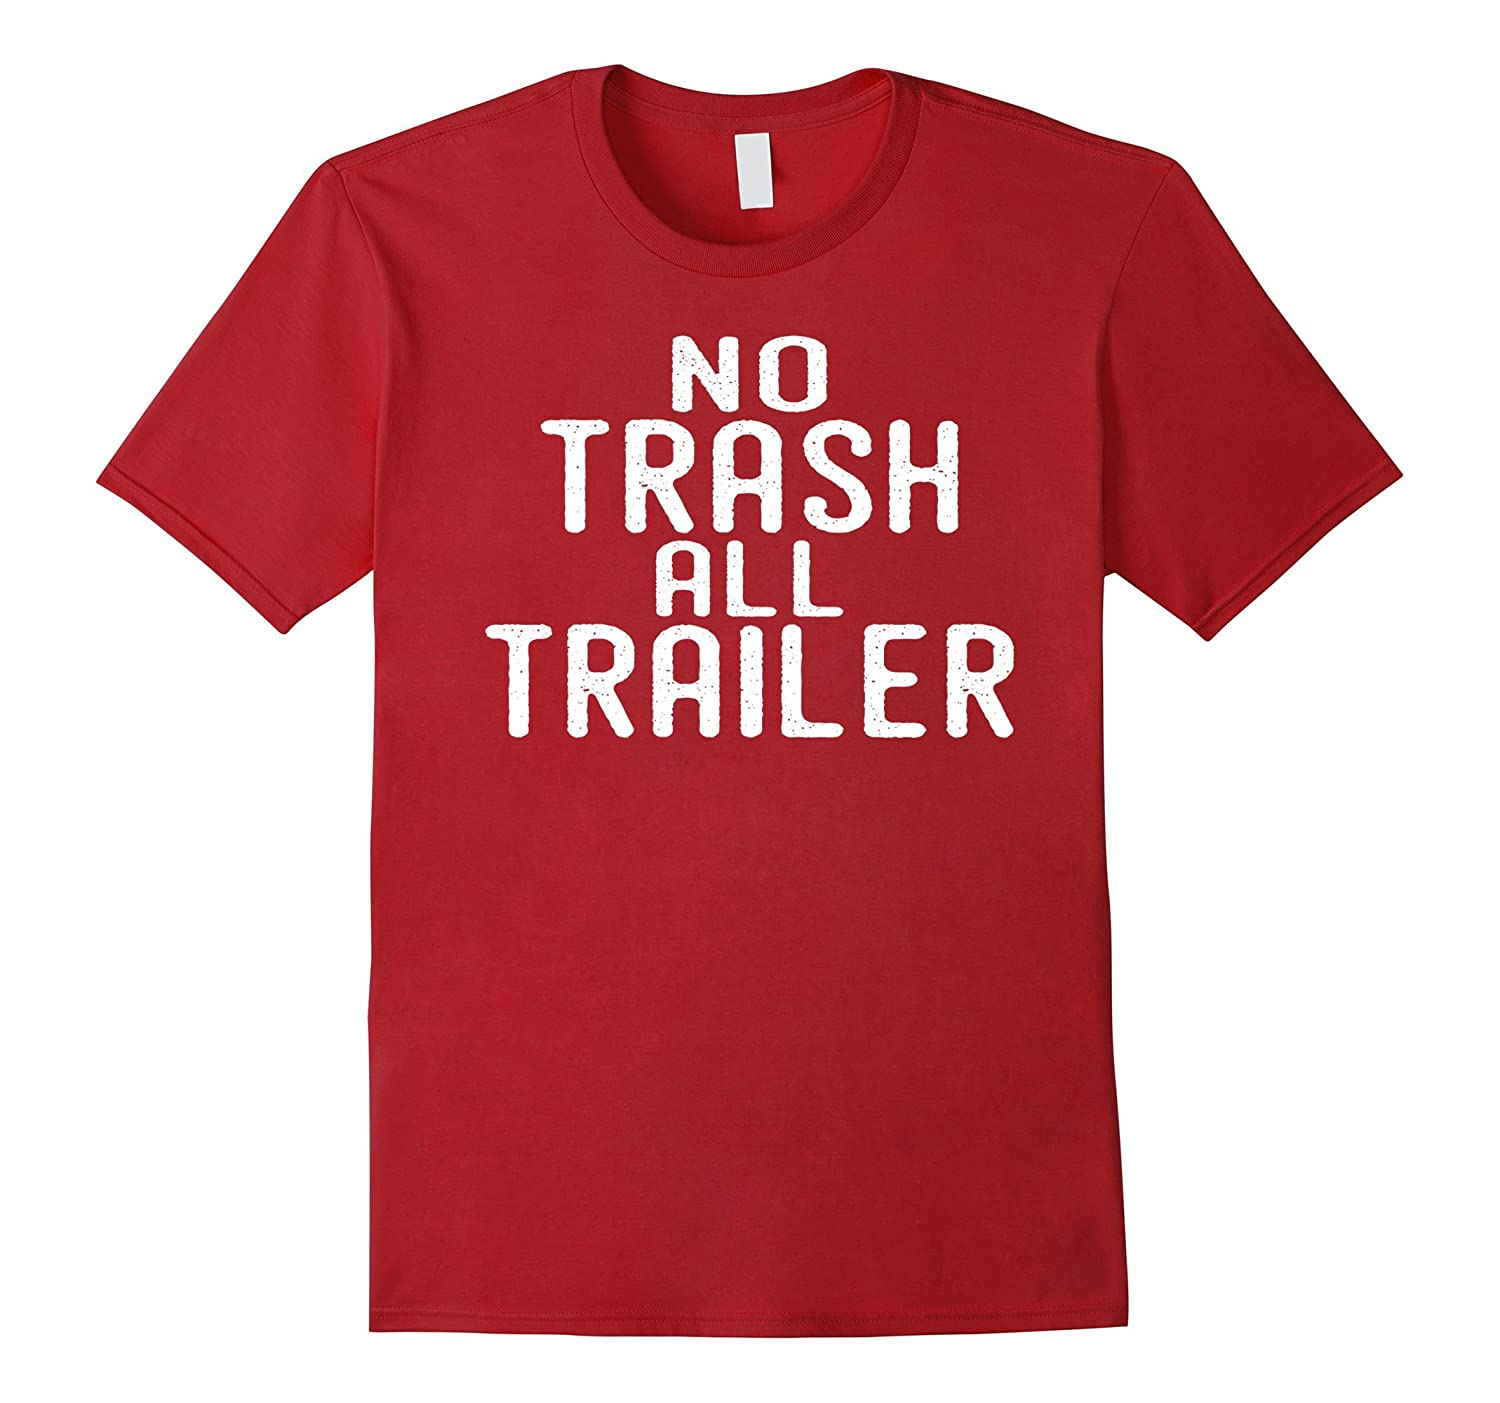 09bcd53000 No Trash All Trailer Redneck Camping RV Mobile Home T-shirt – Anztee.com